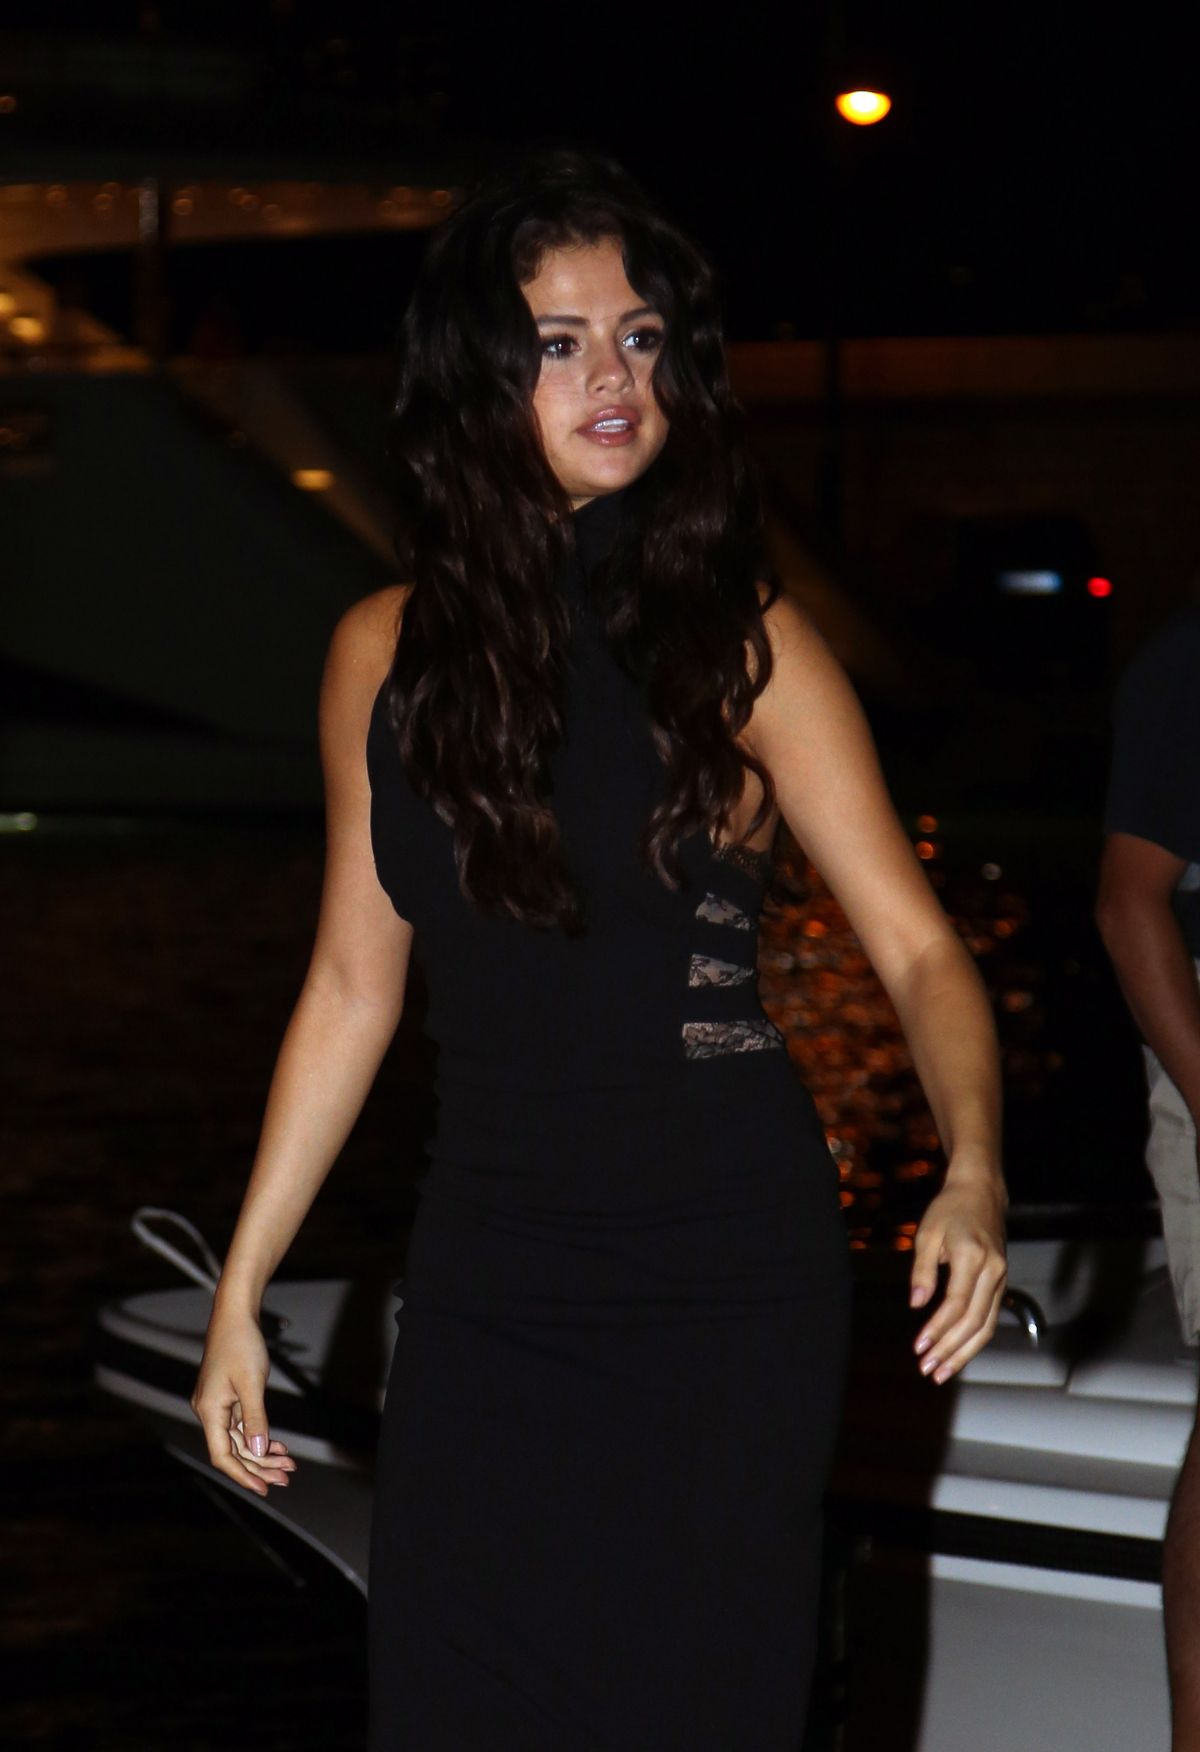 SELENA GOMEZ Heading to a Restaurant in St Tropez to Celebrates Her Birthday